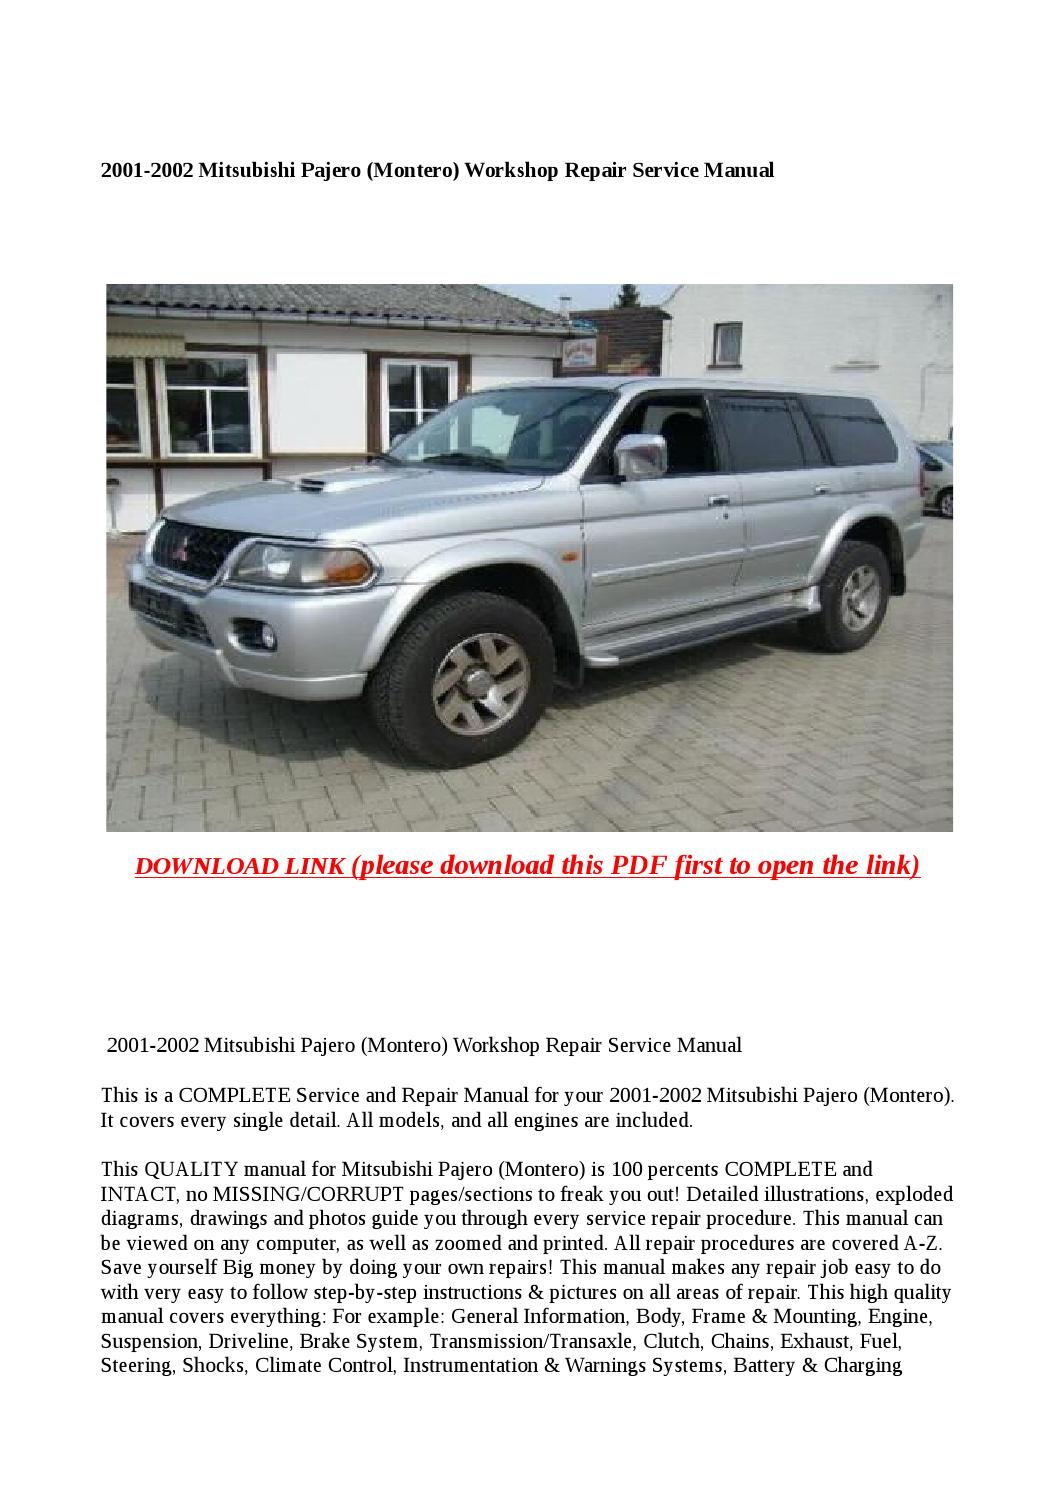 2001 2002 mitsubishi pajero (montero) workshop repair service manual by  buhbu - issuu